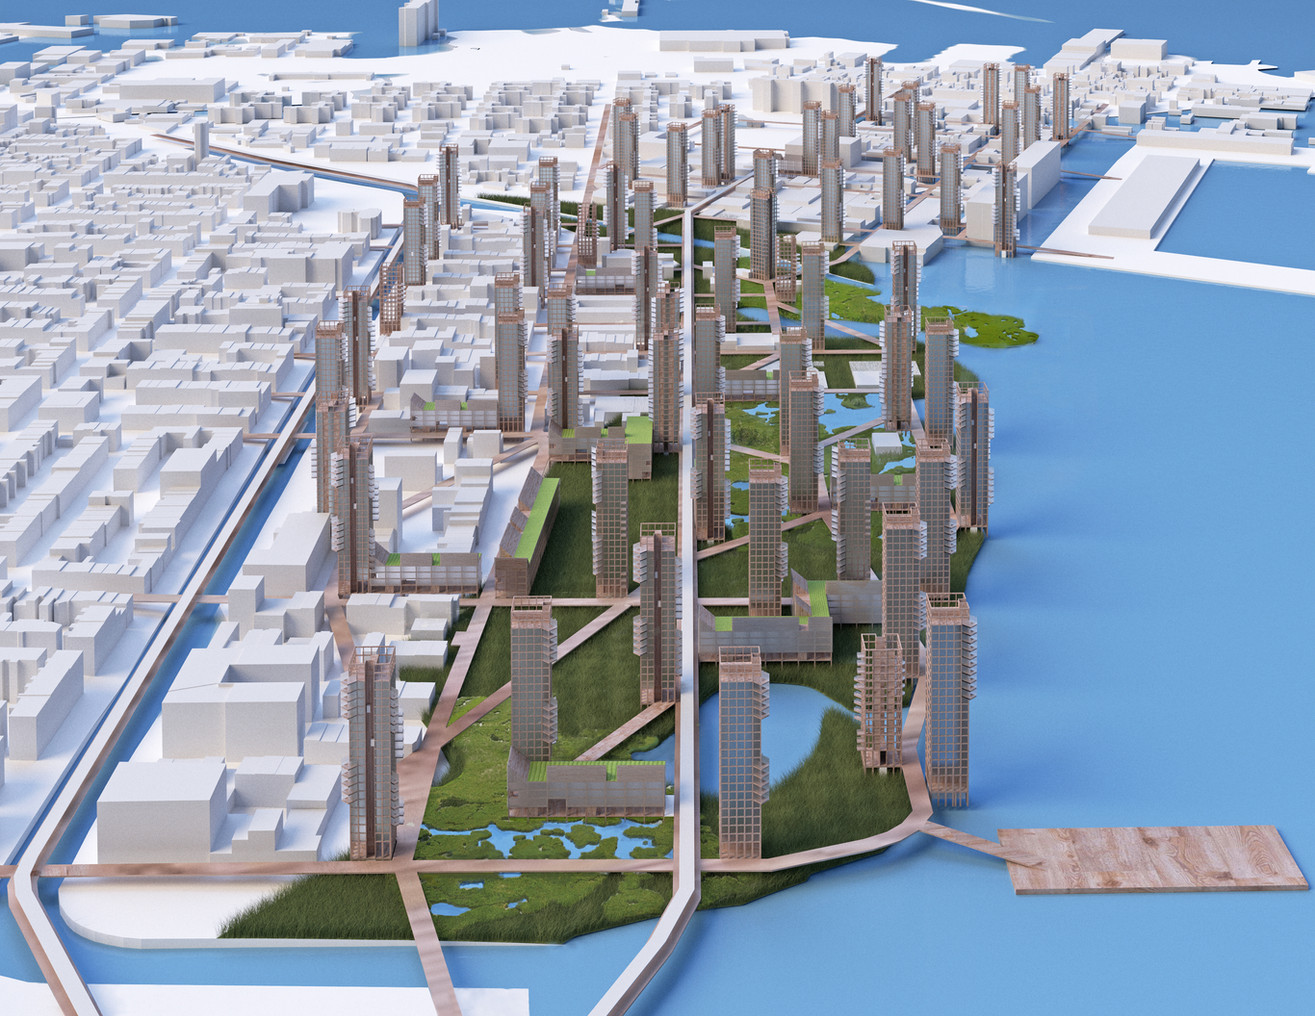 Engage sea level rise for positive urban transformation: symbiotic relation of city living and nature